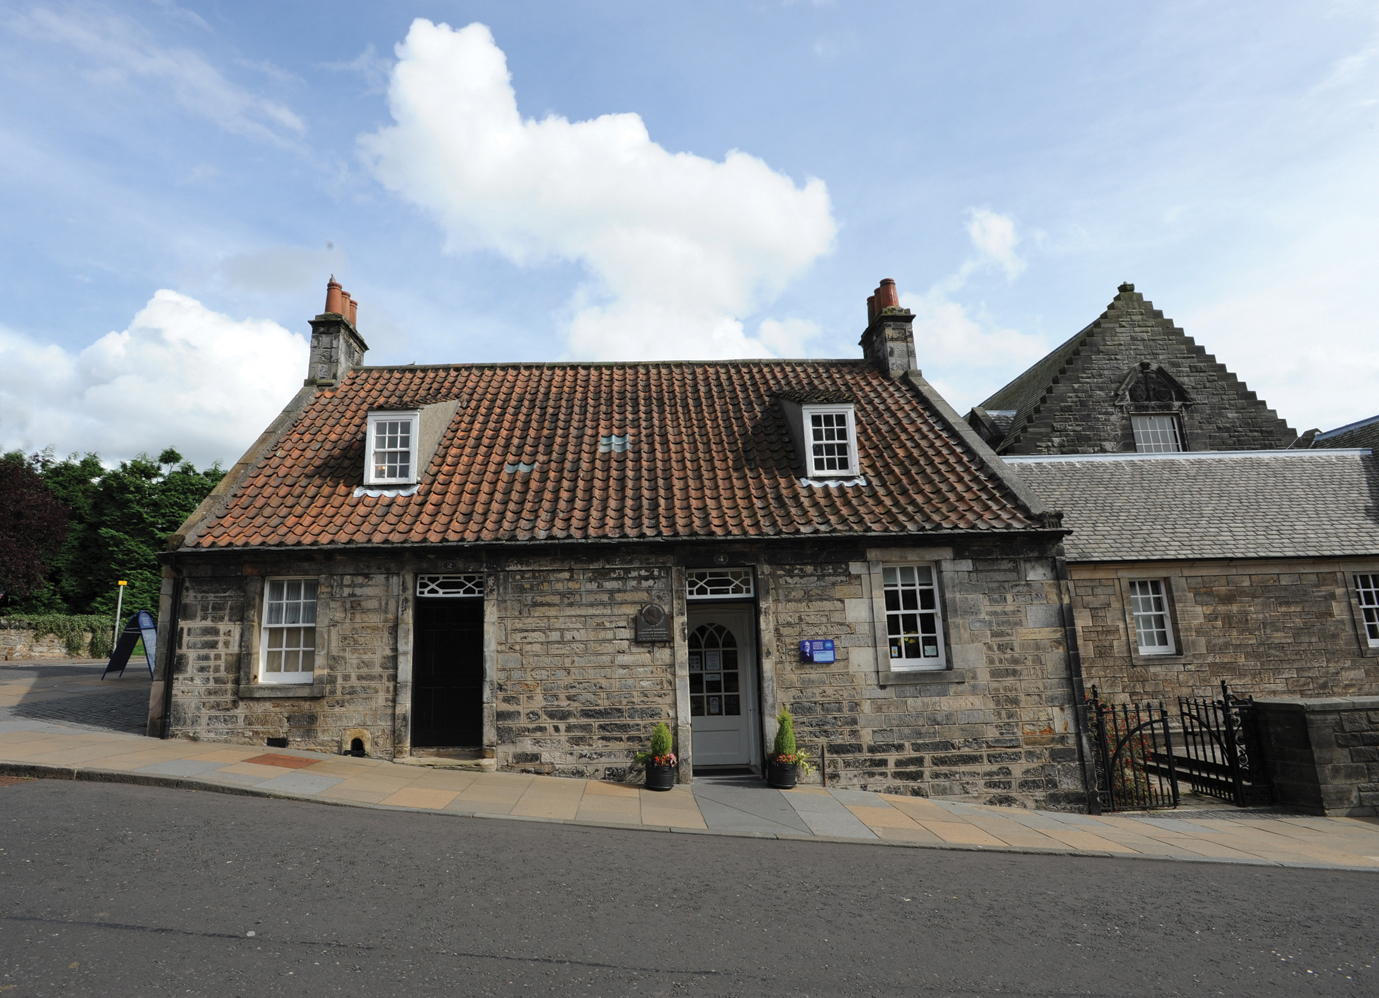 ANDREW CARNEGIE BIRTHPLACE MUSEUM